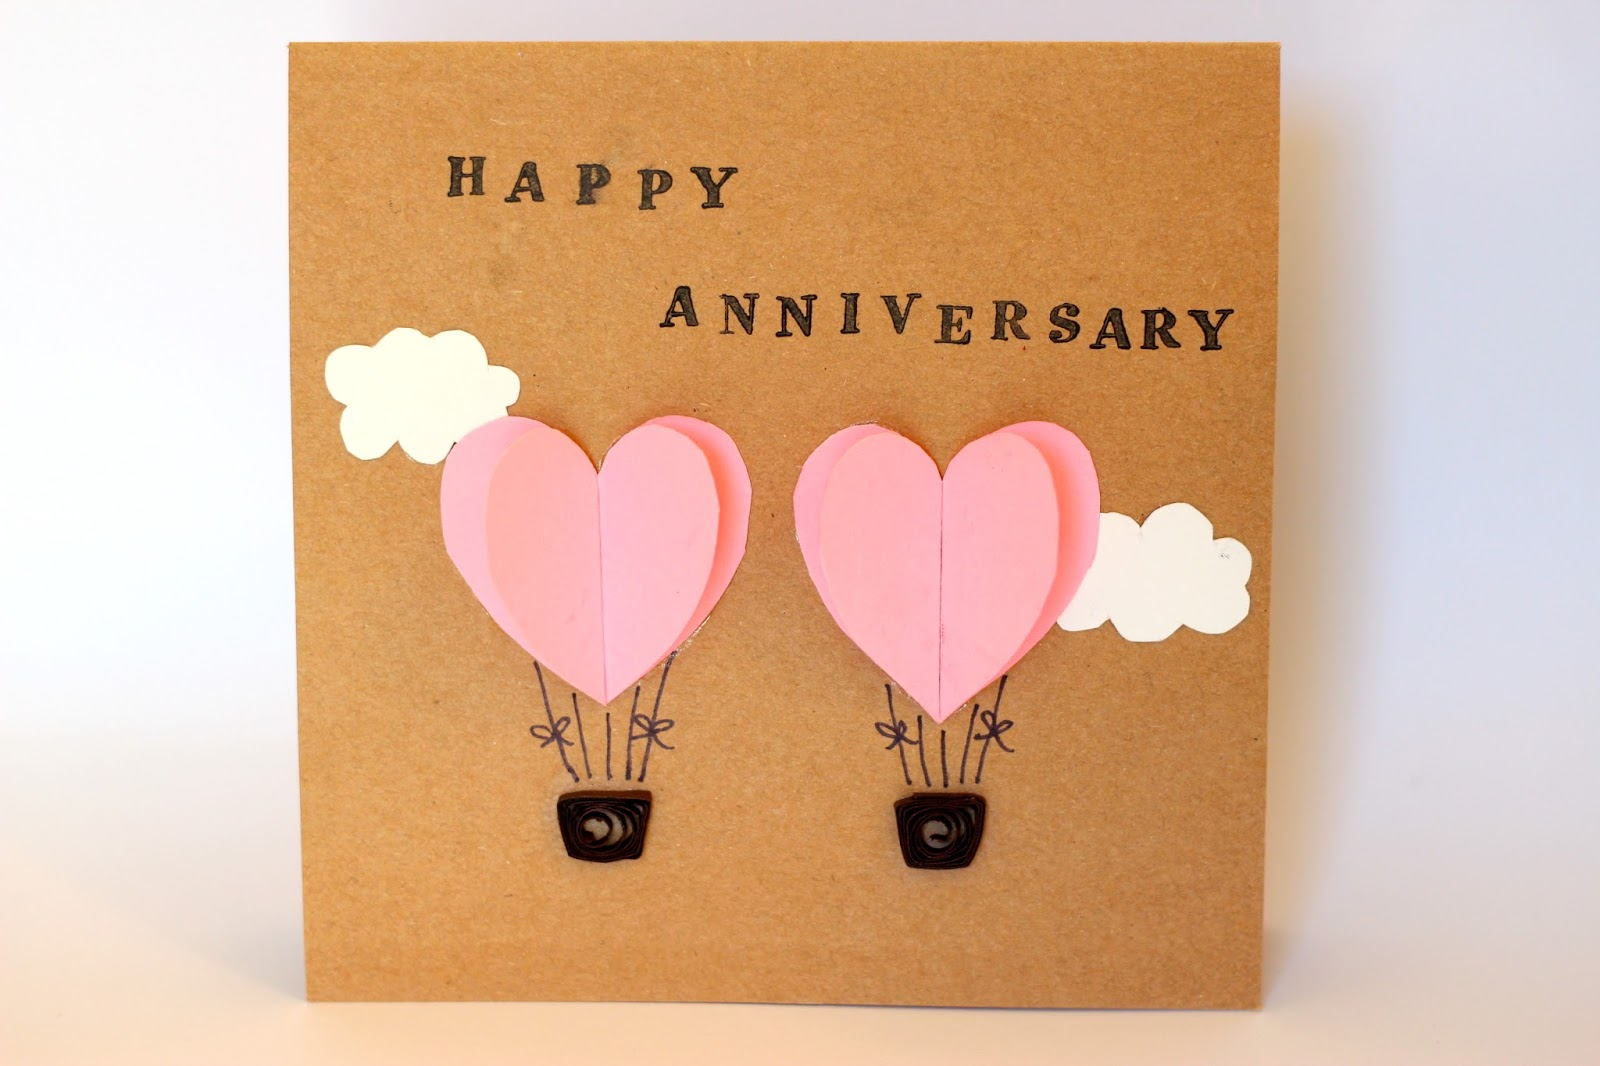 Doleenoted anniversary card with hot air balloons